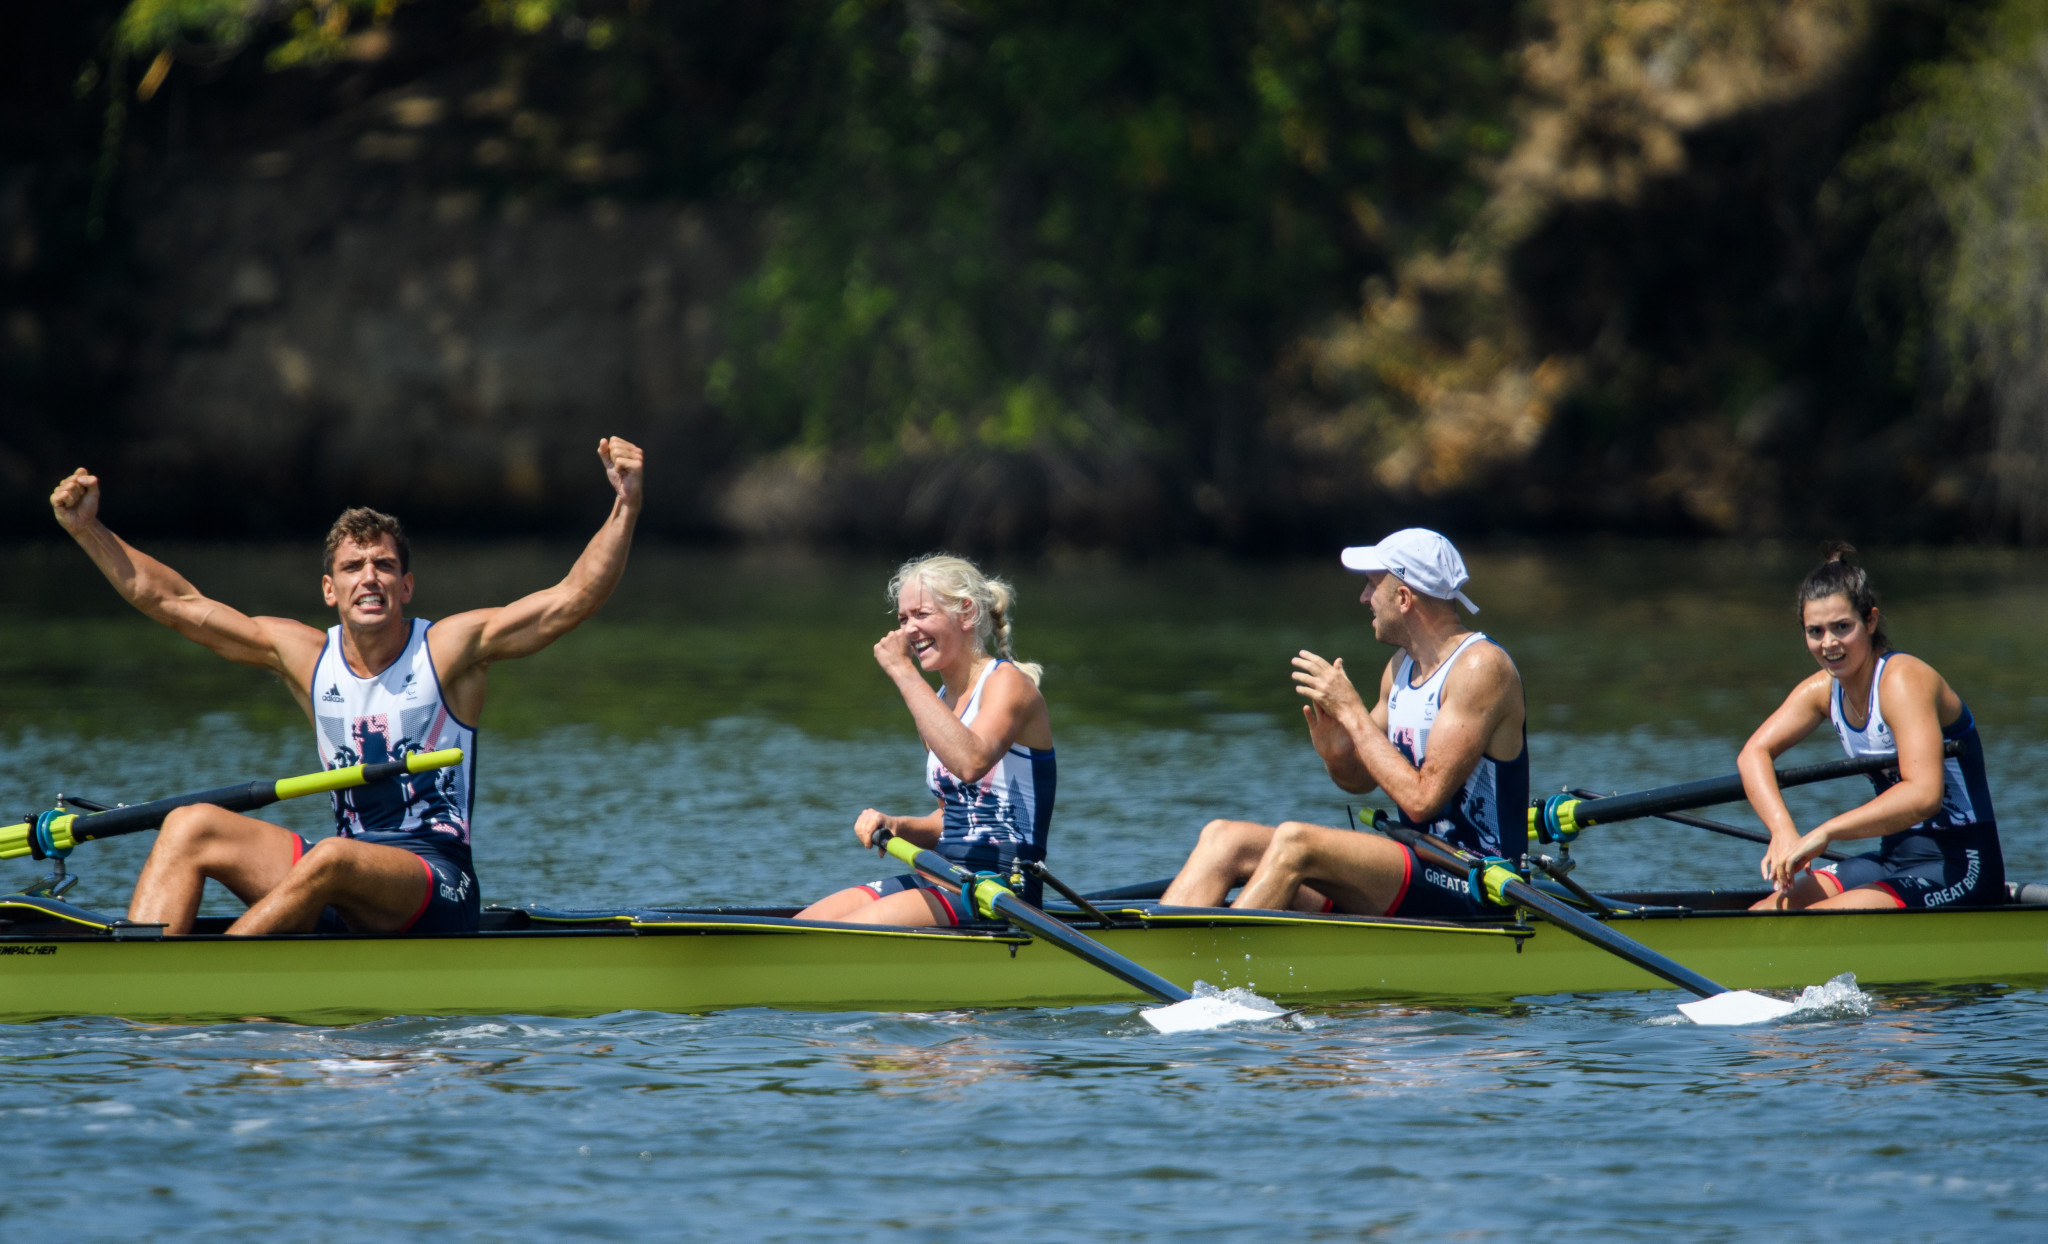 Grace Clough was a member of the gold medal-winning mixed coxed four crew at Rio 2016 ©Getty Images